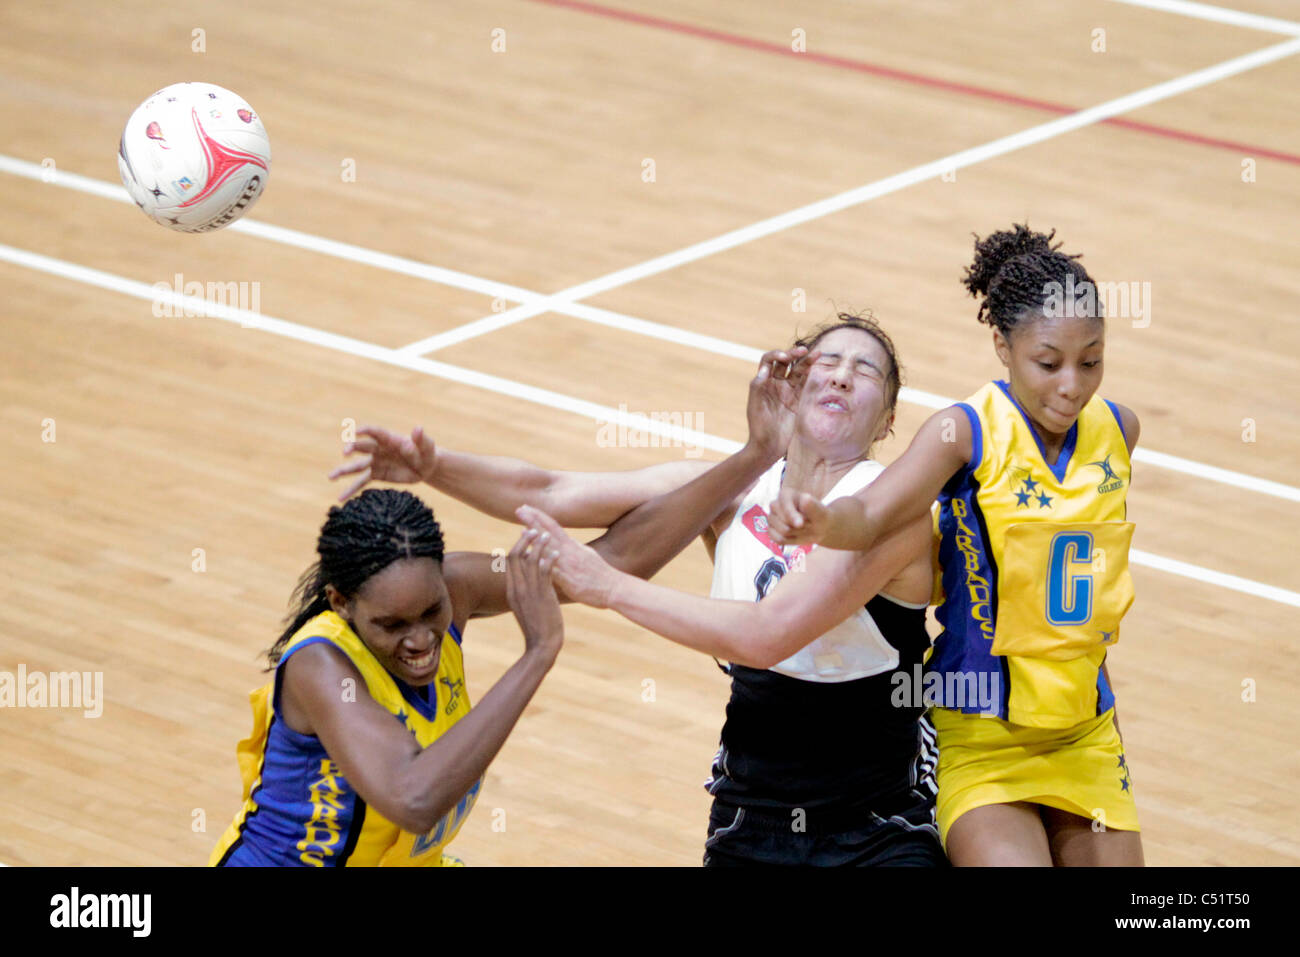 Players from Barbados(yellow) and New Zealand battle for the ball during a friendly match - Stock Image